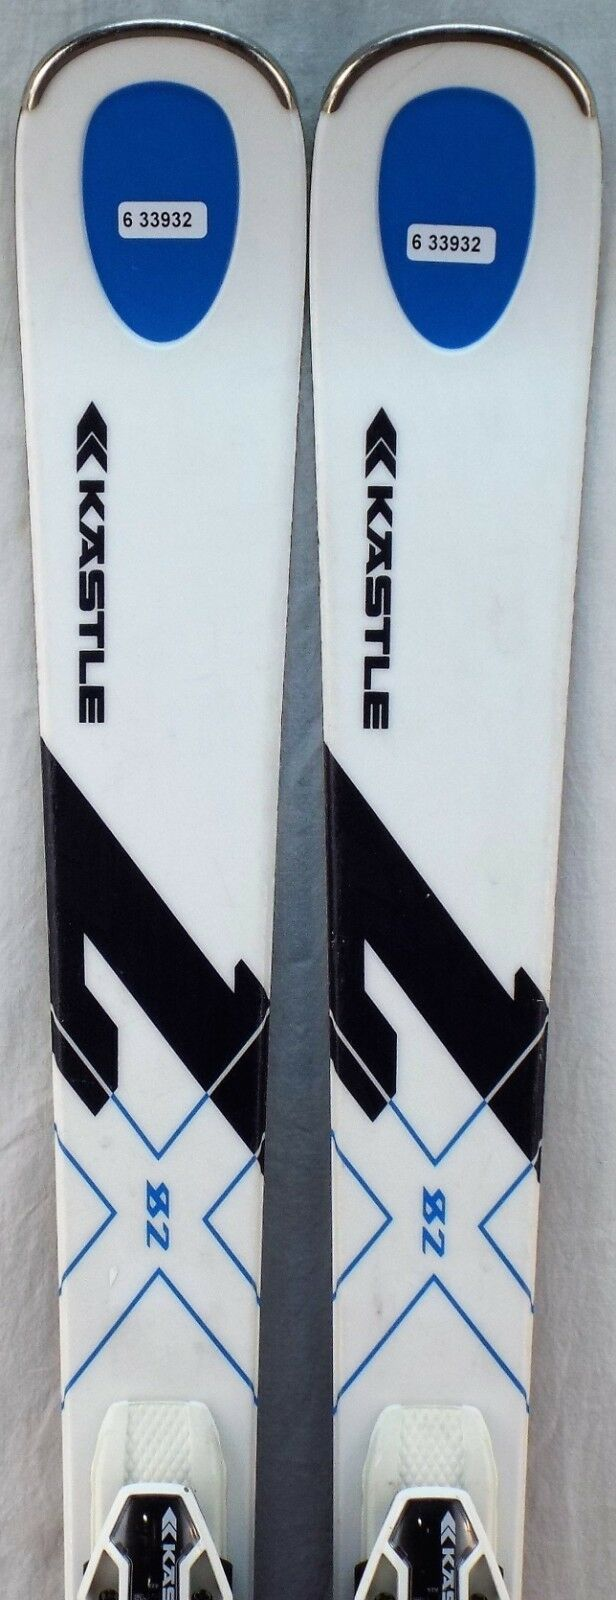 15-16 Kastle  LX82 Used Women's Demo Skis w Bindings Size 156cm  high-quality merchandise and convenient, honest service